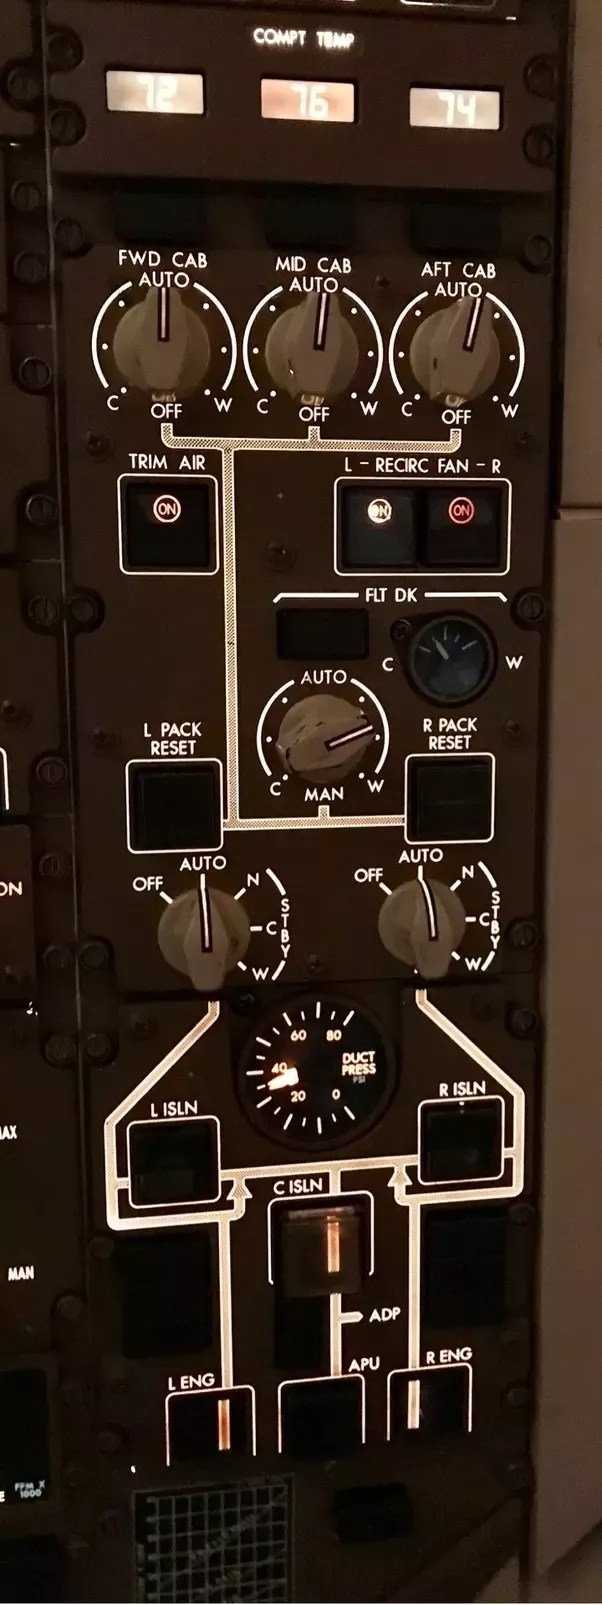 medium resolution of in this example the aircraft was at 37 000 feet the pressure differential between cabin and outside air is 8 7 psi and the cabin altitude is being